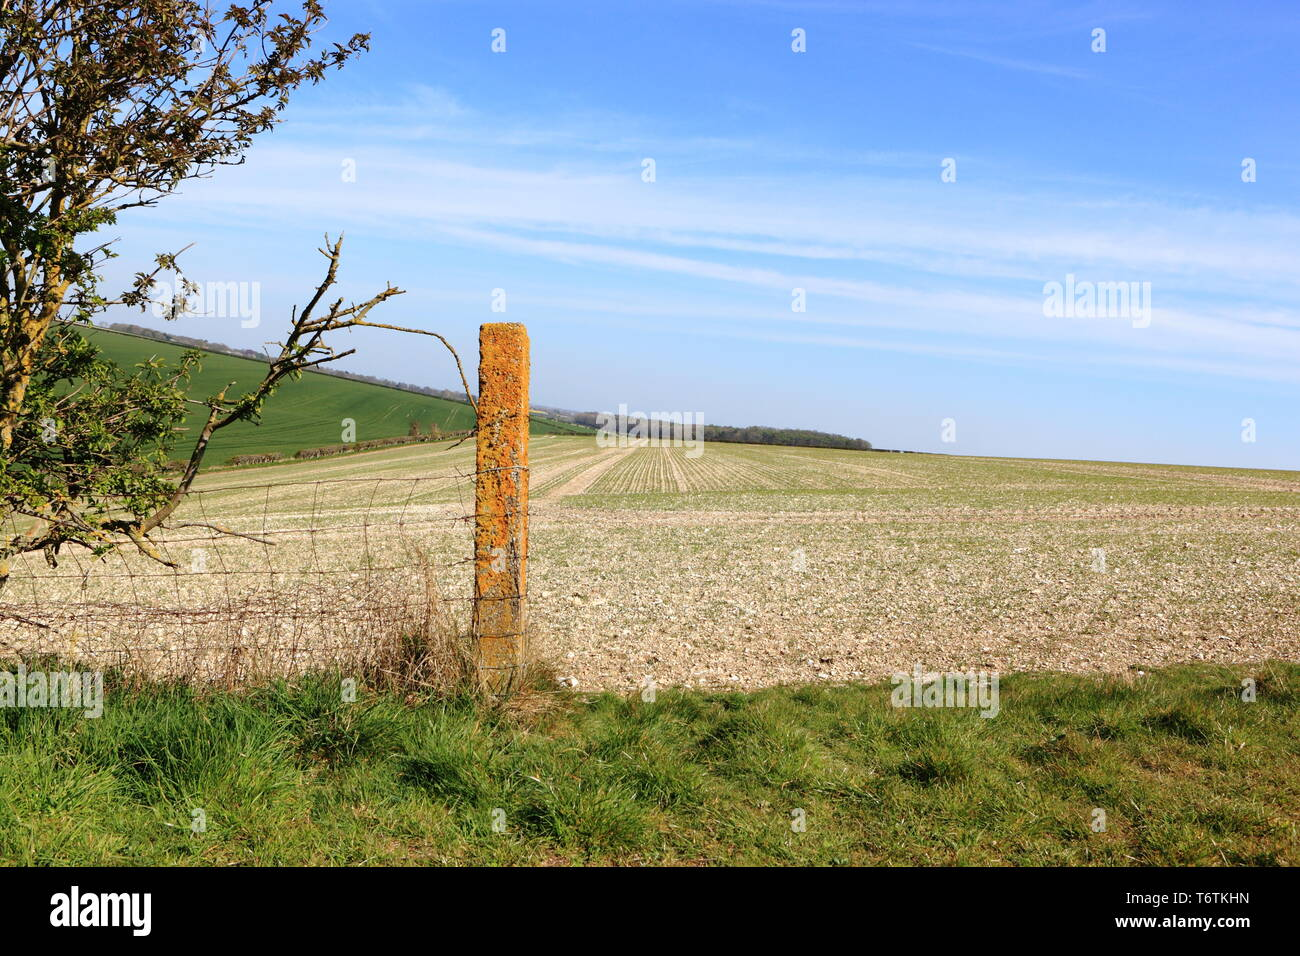 A lichen covered fence post in the scenic farming landscape of the Yorkshire wolds in springtime - Stock Image